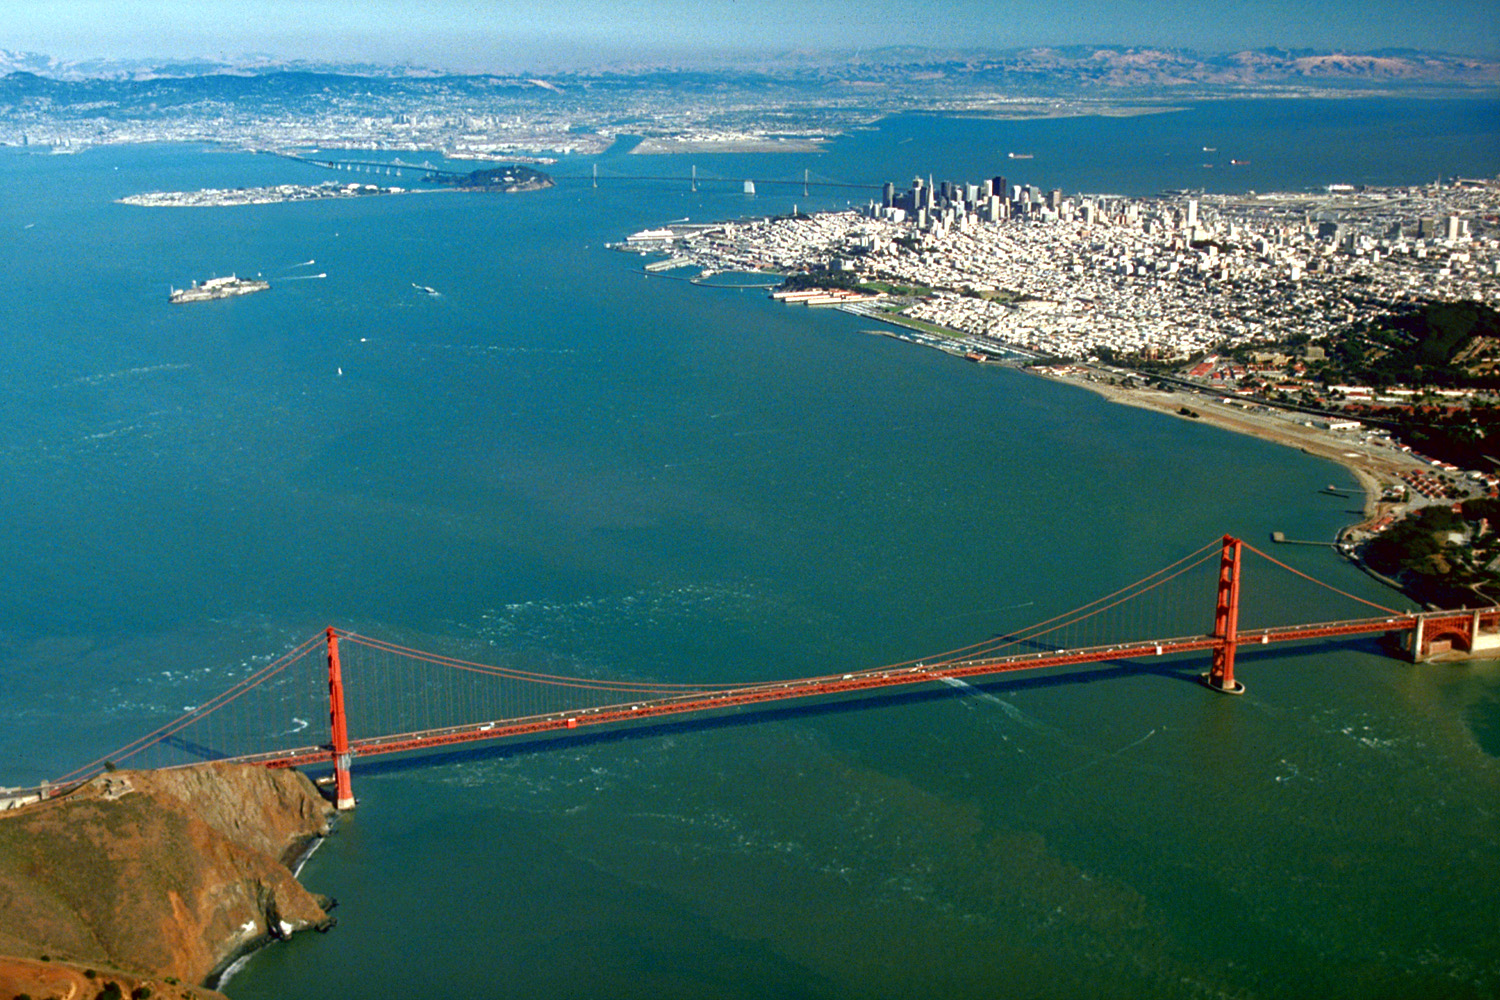 Aerial View of San Francisco Bay